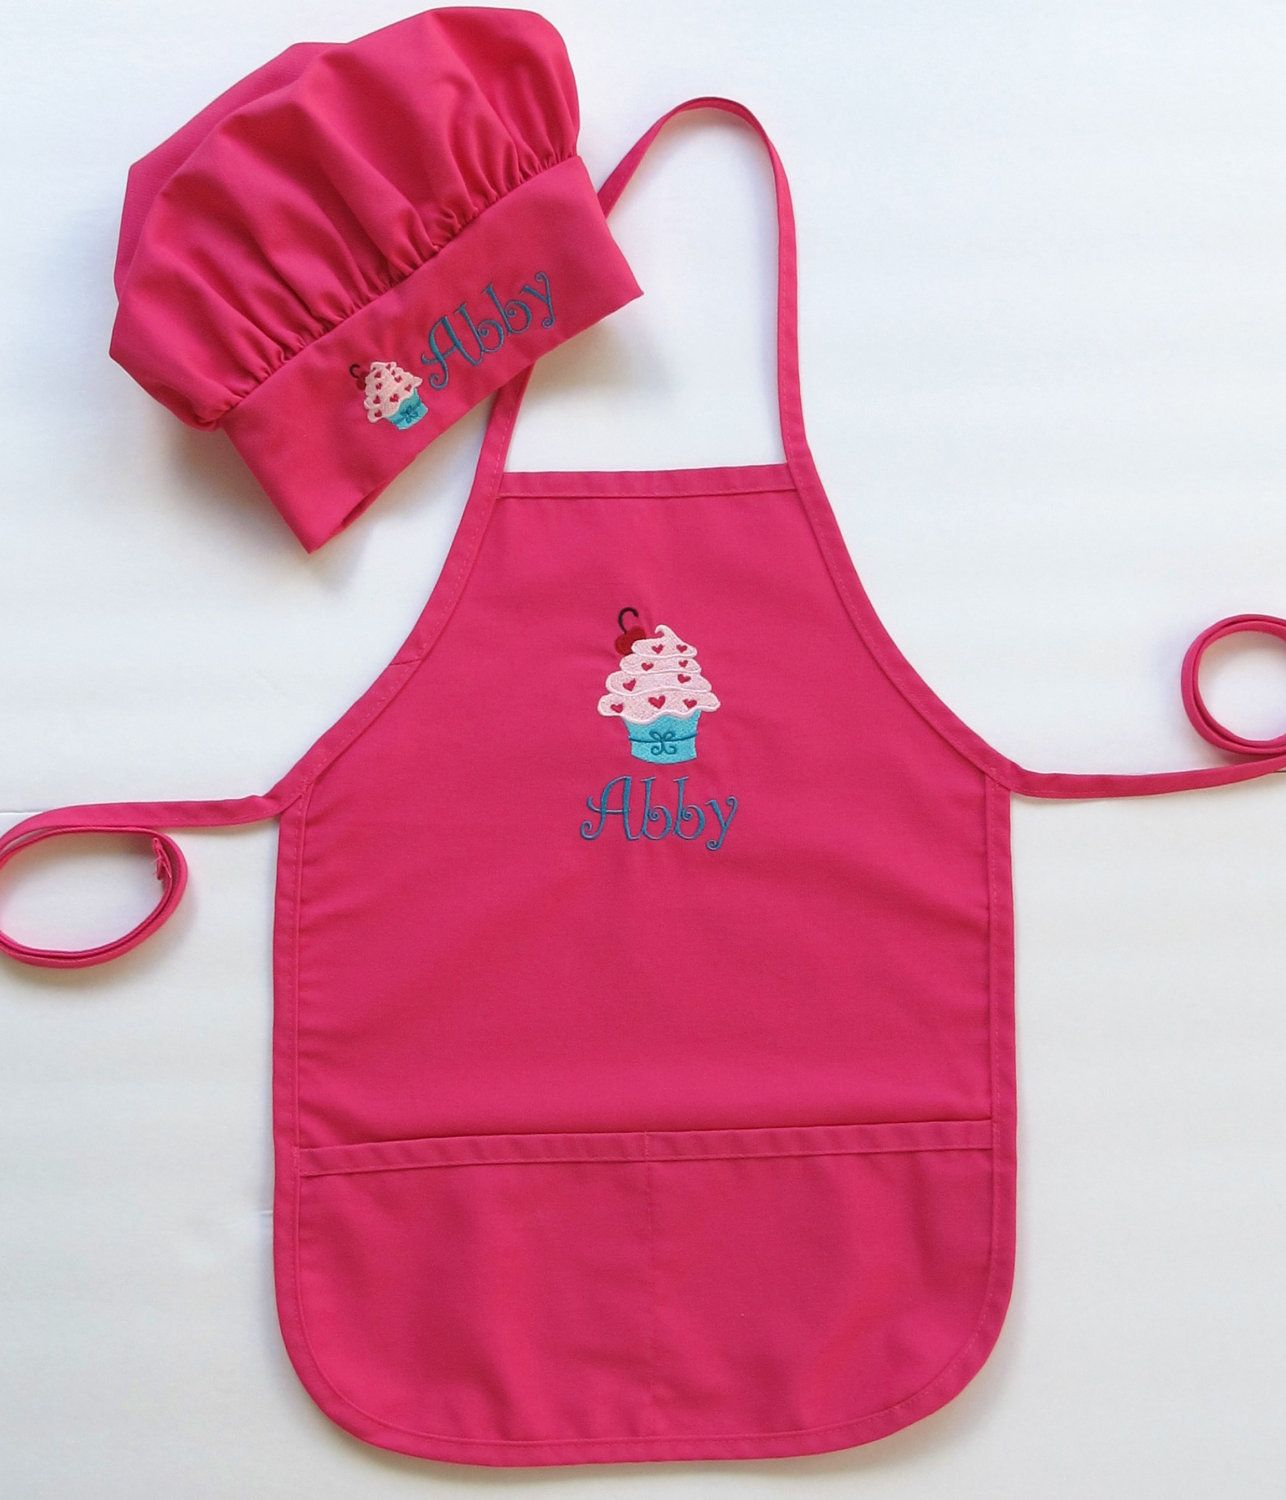 75207211 Personalized Apron AND Chef Hat for Kids - Childrens Personalized Apron and Chef  Hat - Cupcake. $38.00, via Etsy.